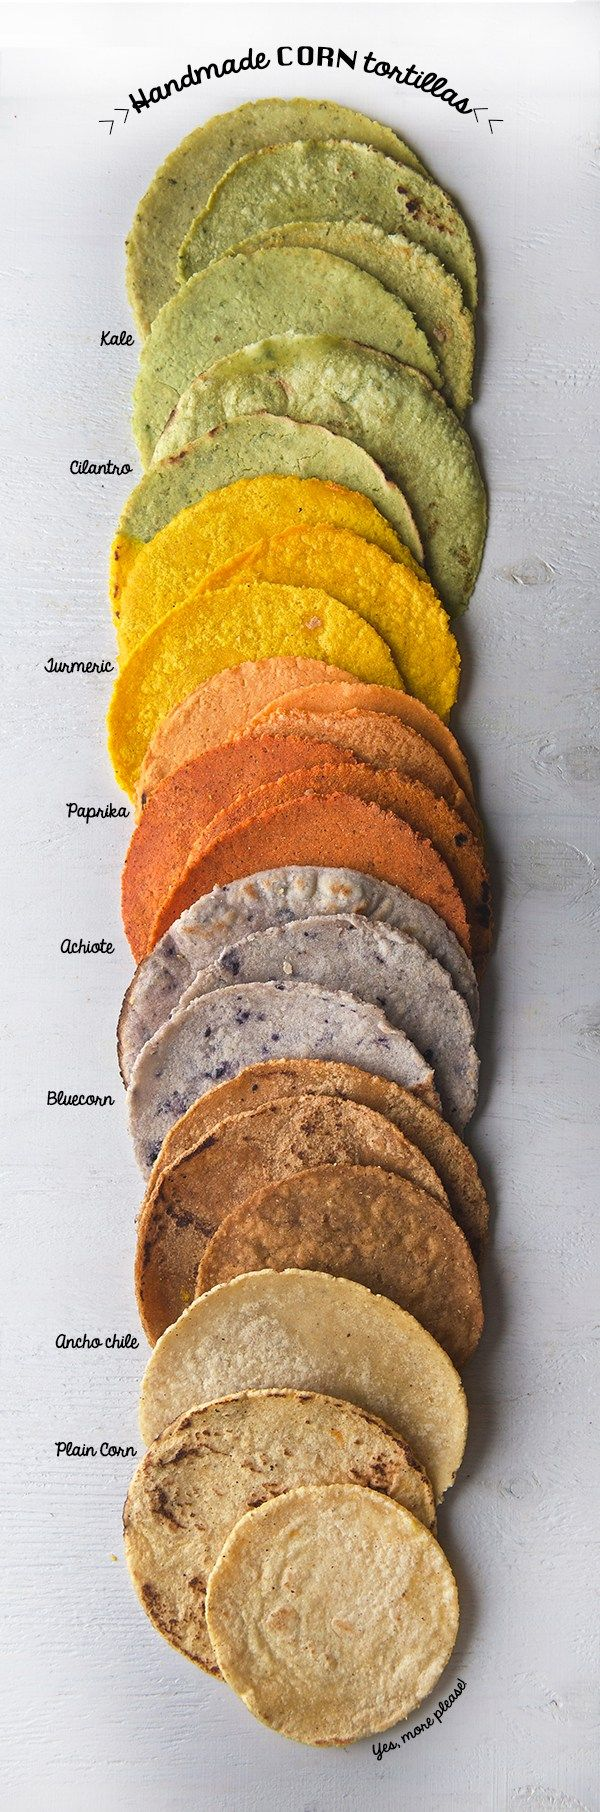 Handmade Corn Tortillas - Step-by-step instructions for eight different flavors!